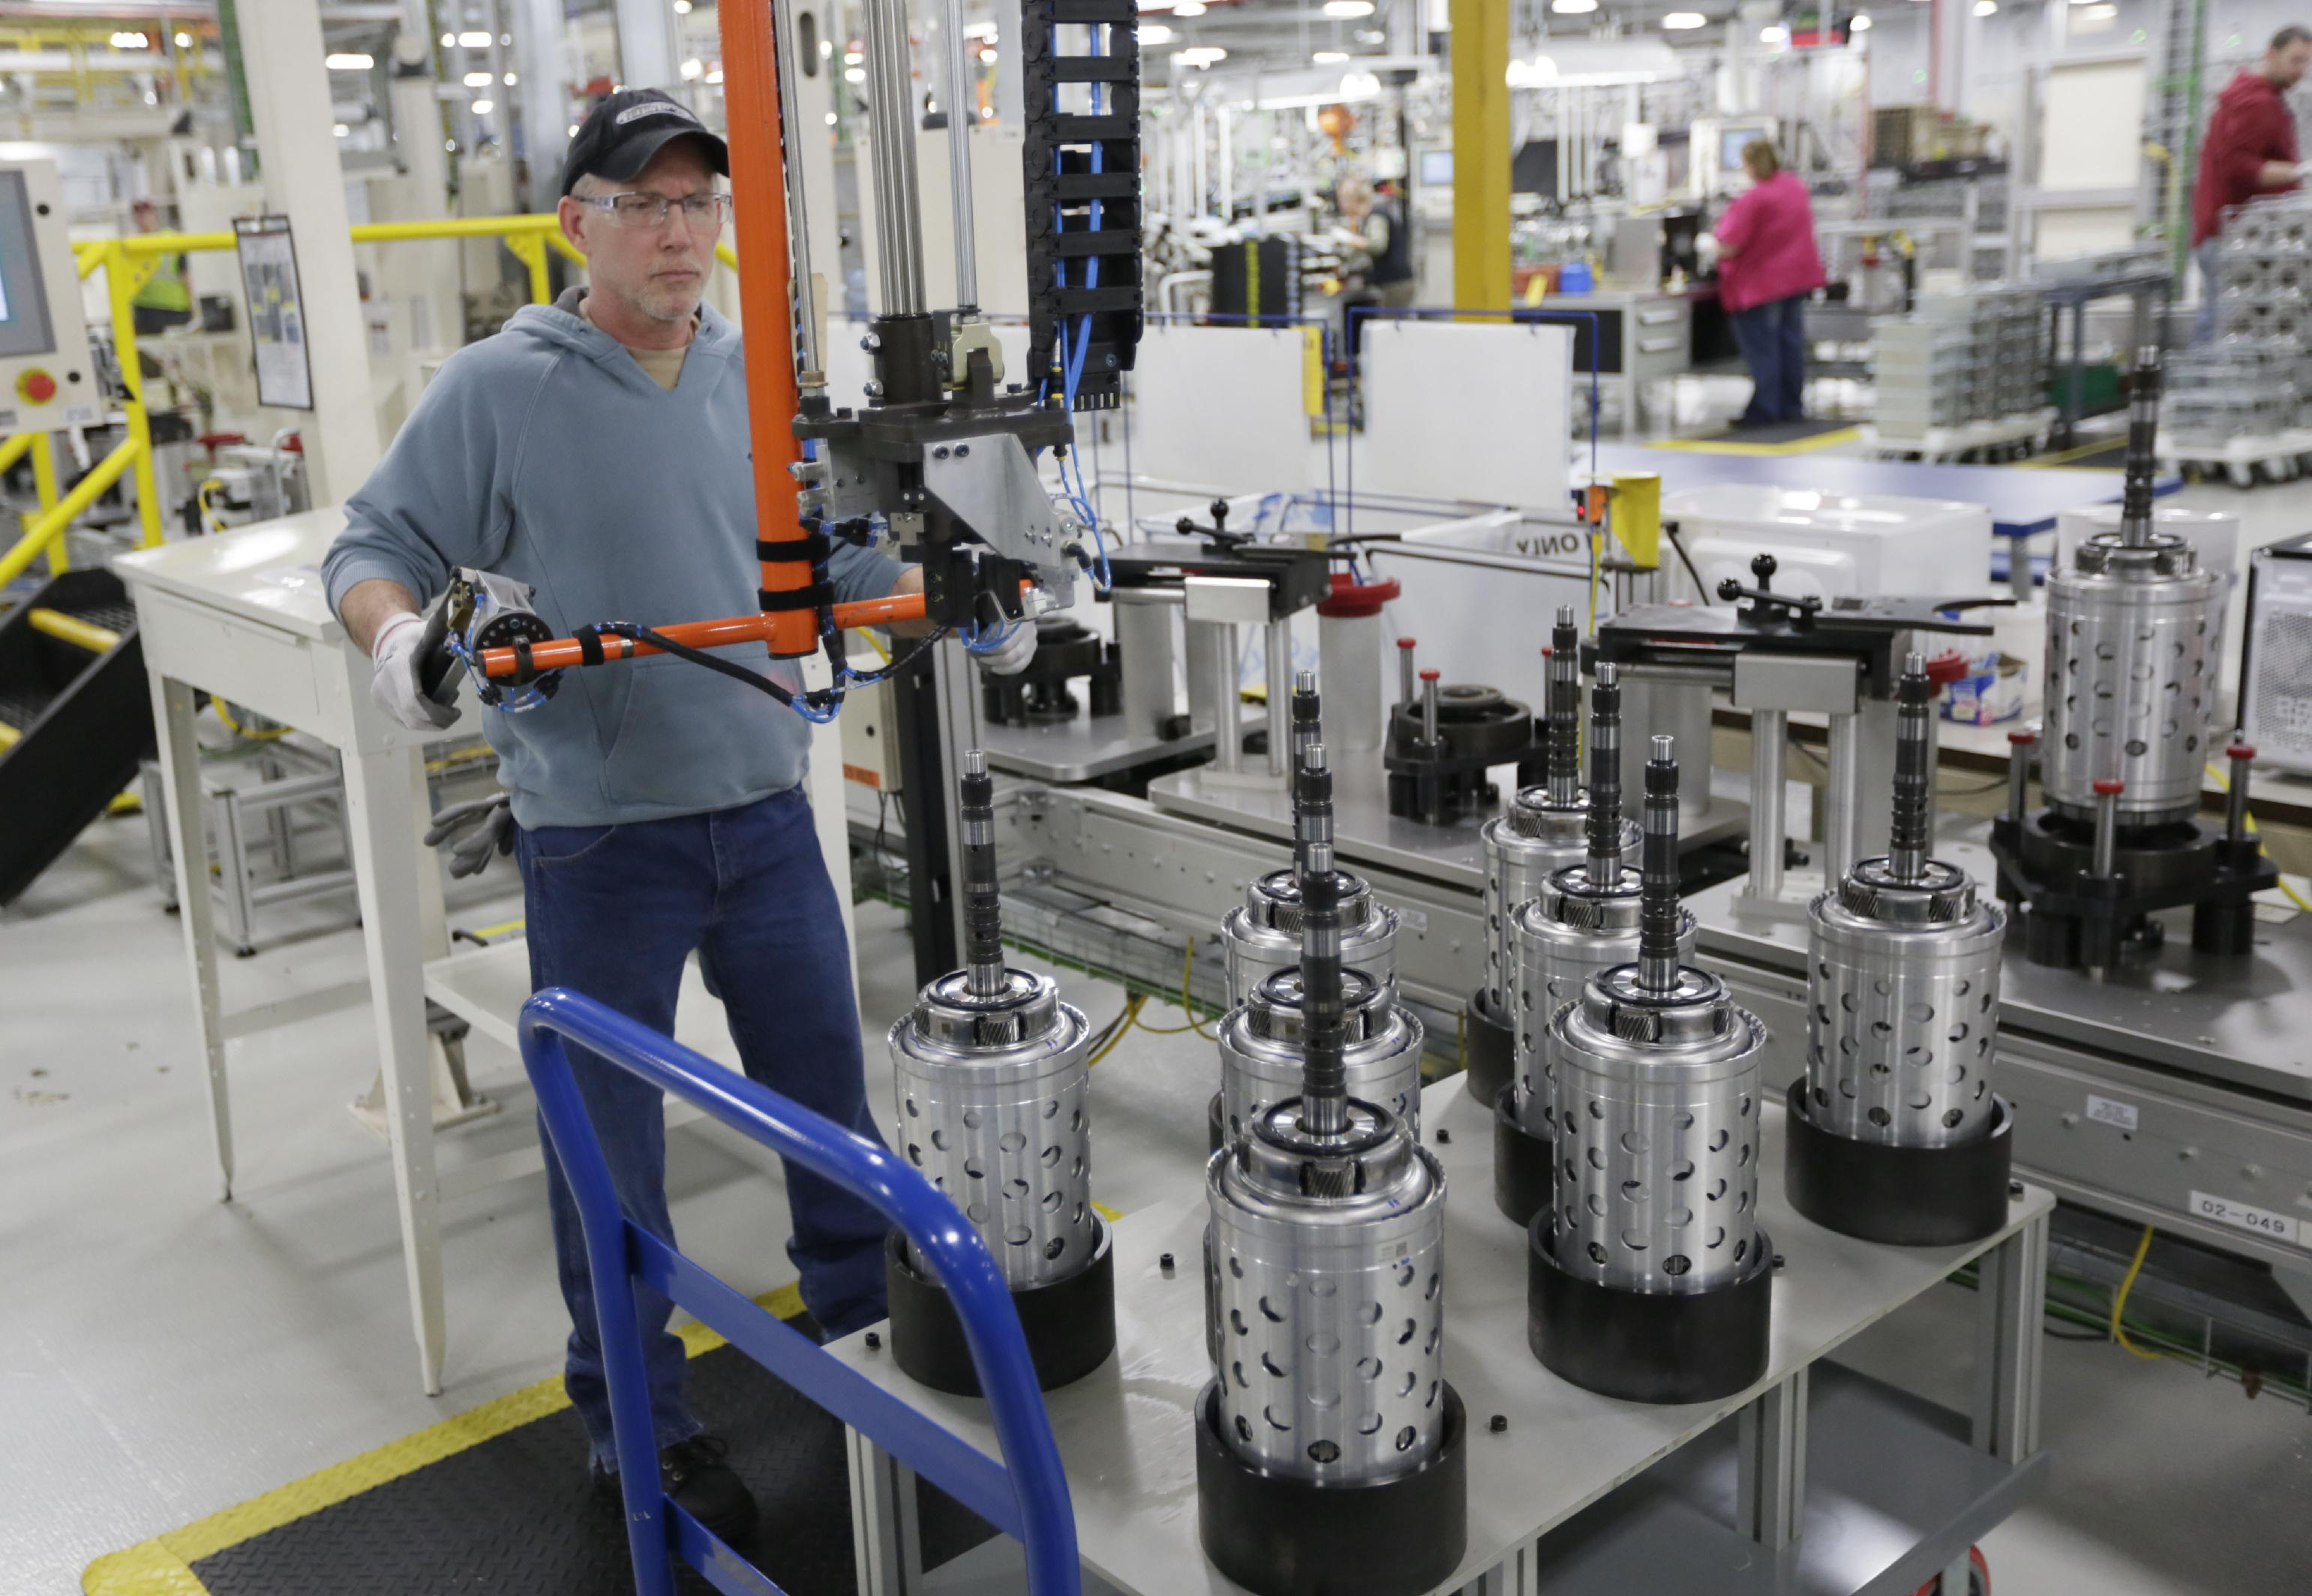 A worker on the assembly line at the Chrysler transmission plat in Kokomo, Ind. (AP Photo/AJ Mast, File)